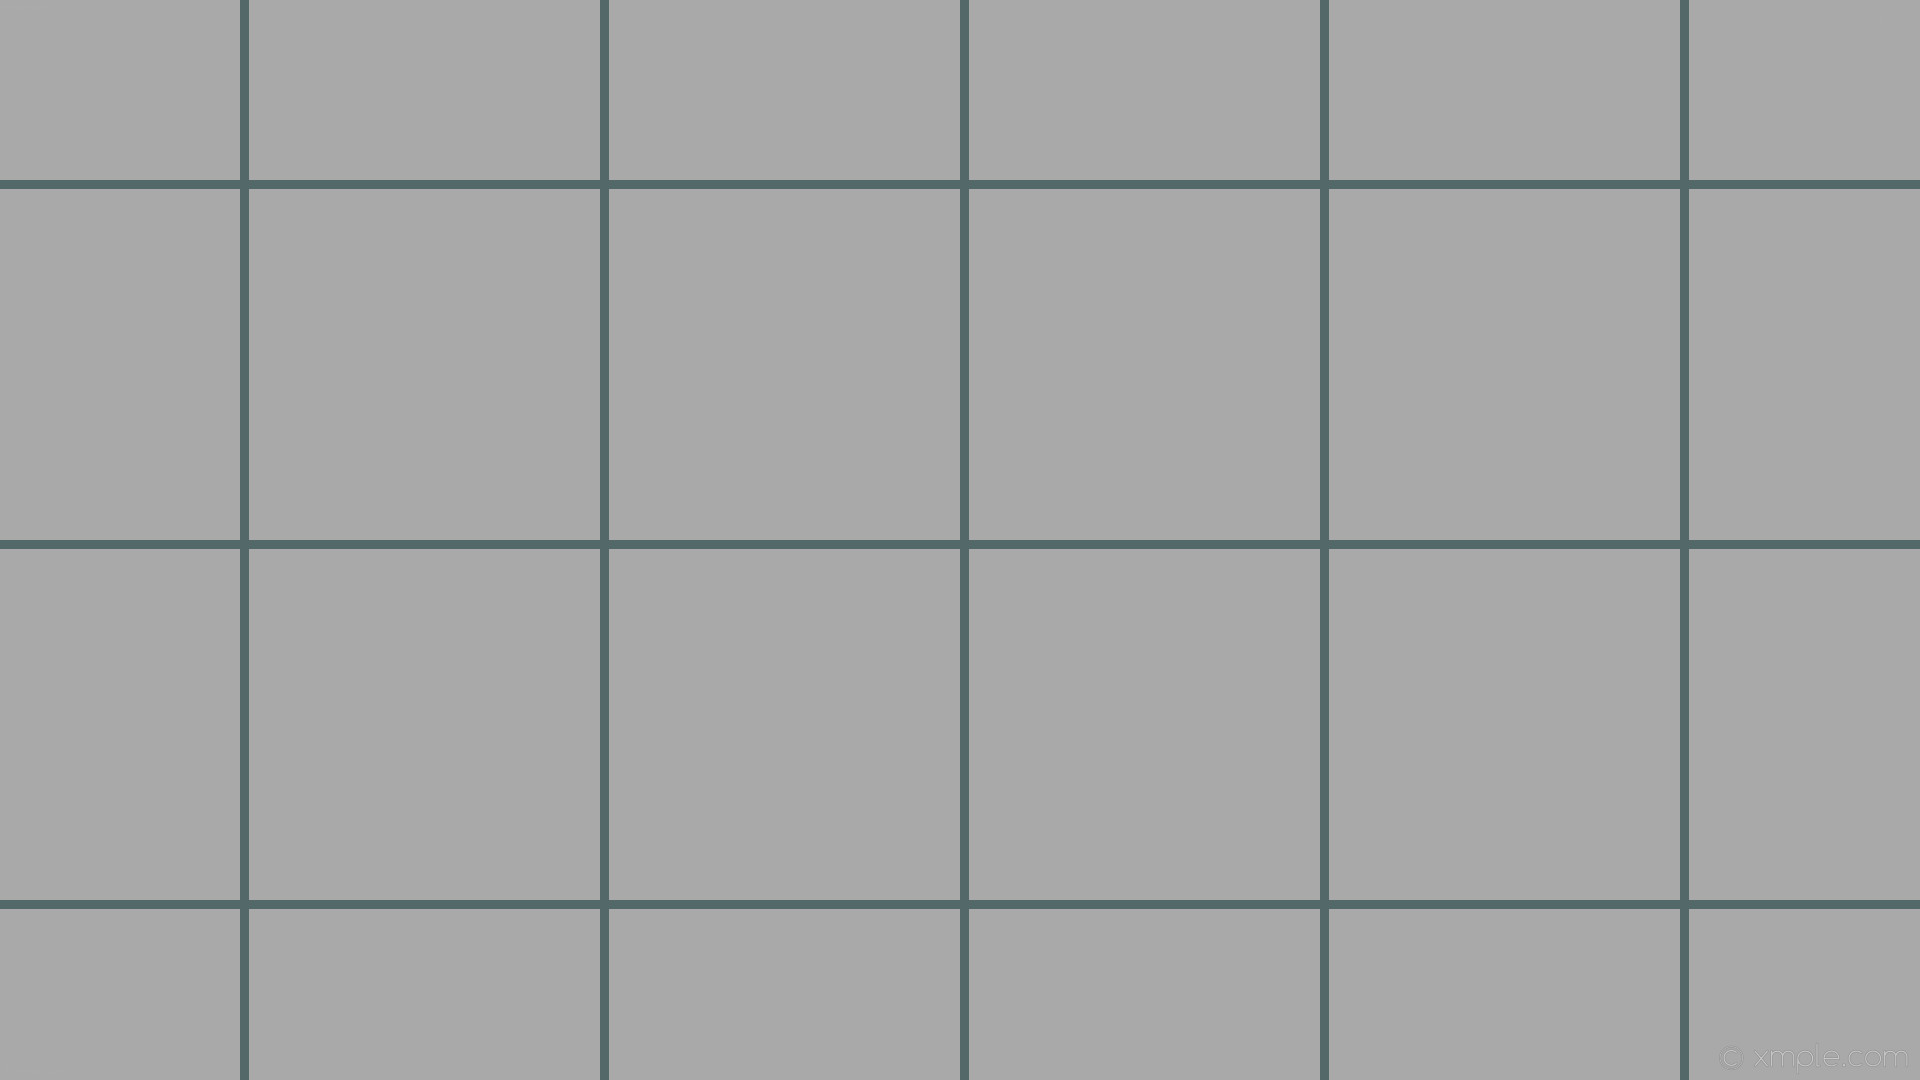 wallpaper grey grid graph paper dark gray dark slate gray #a9a9a9 #2f4f4f 0°